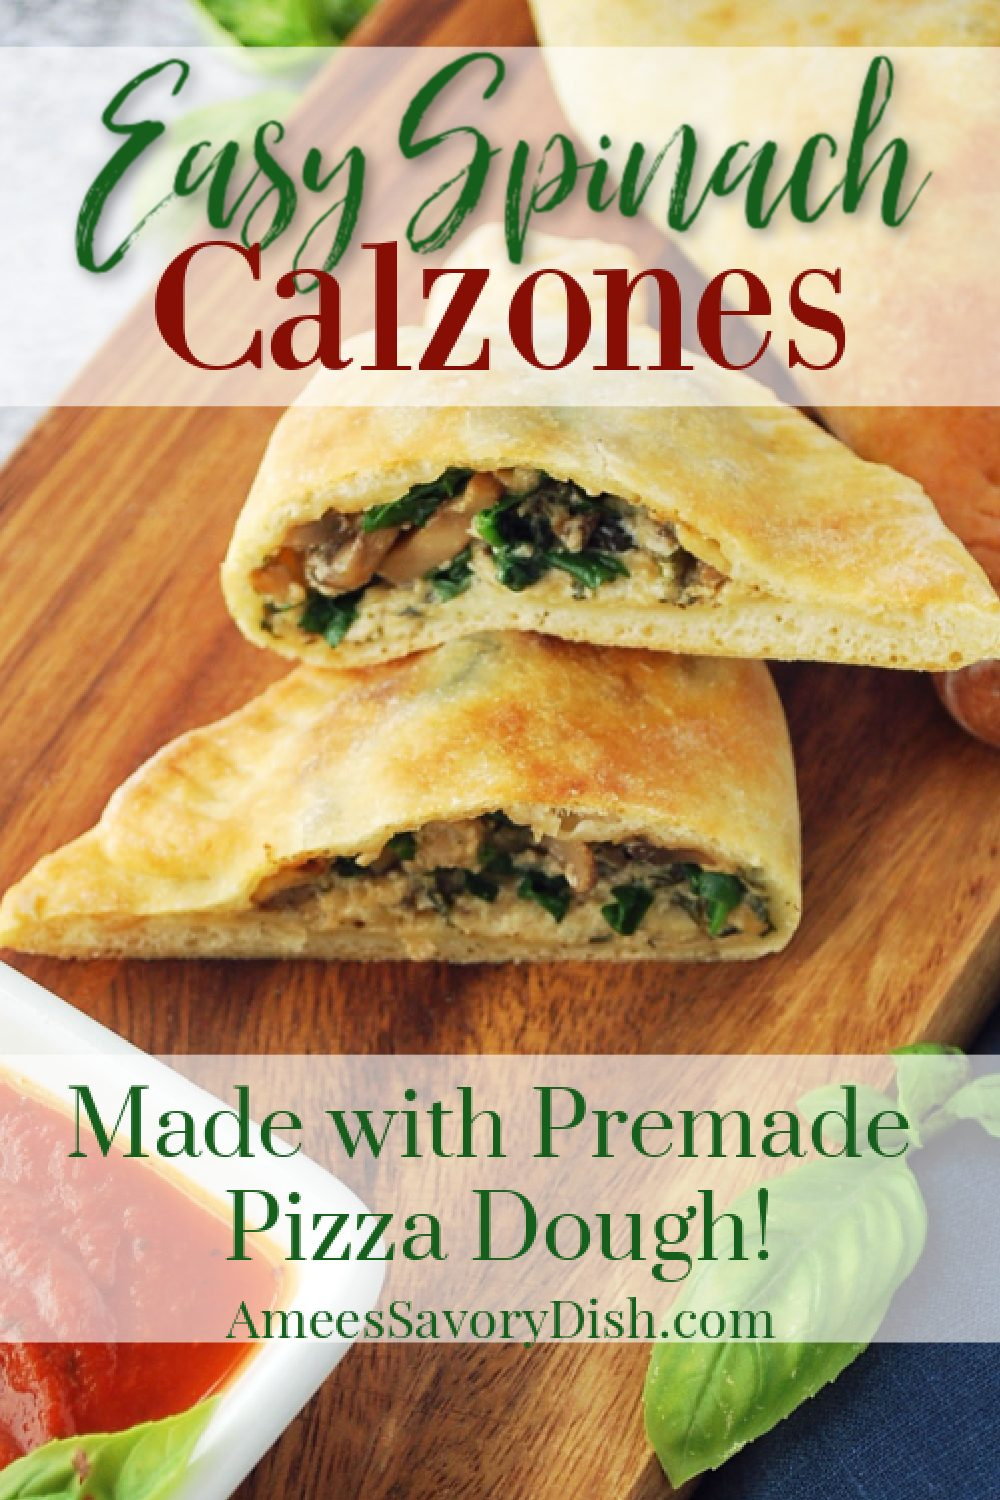 Easy Spinach Calzones are super easy to make using ready-made pizza dough. This fast and easy recipe is kid-friendly and great for a busy weeknight meal. #calzonerecipe #spinachcalzones #easycalzones #easyitalianrecipes #italianfood #calzone via @Ameessavorydish